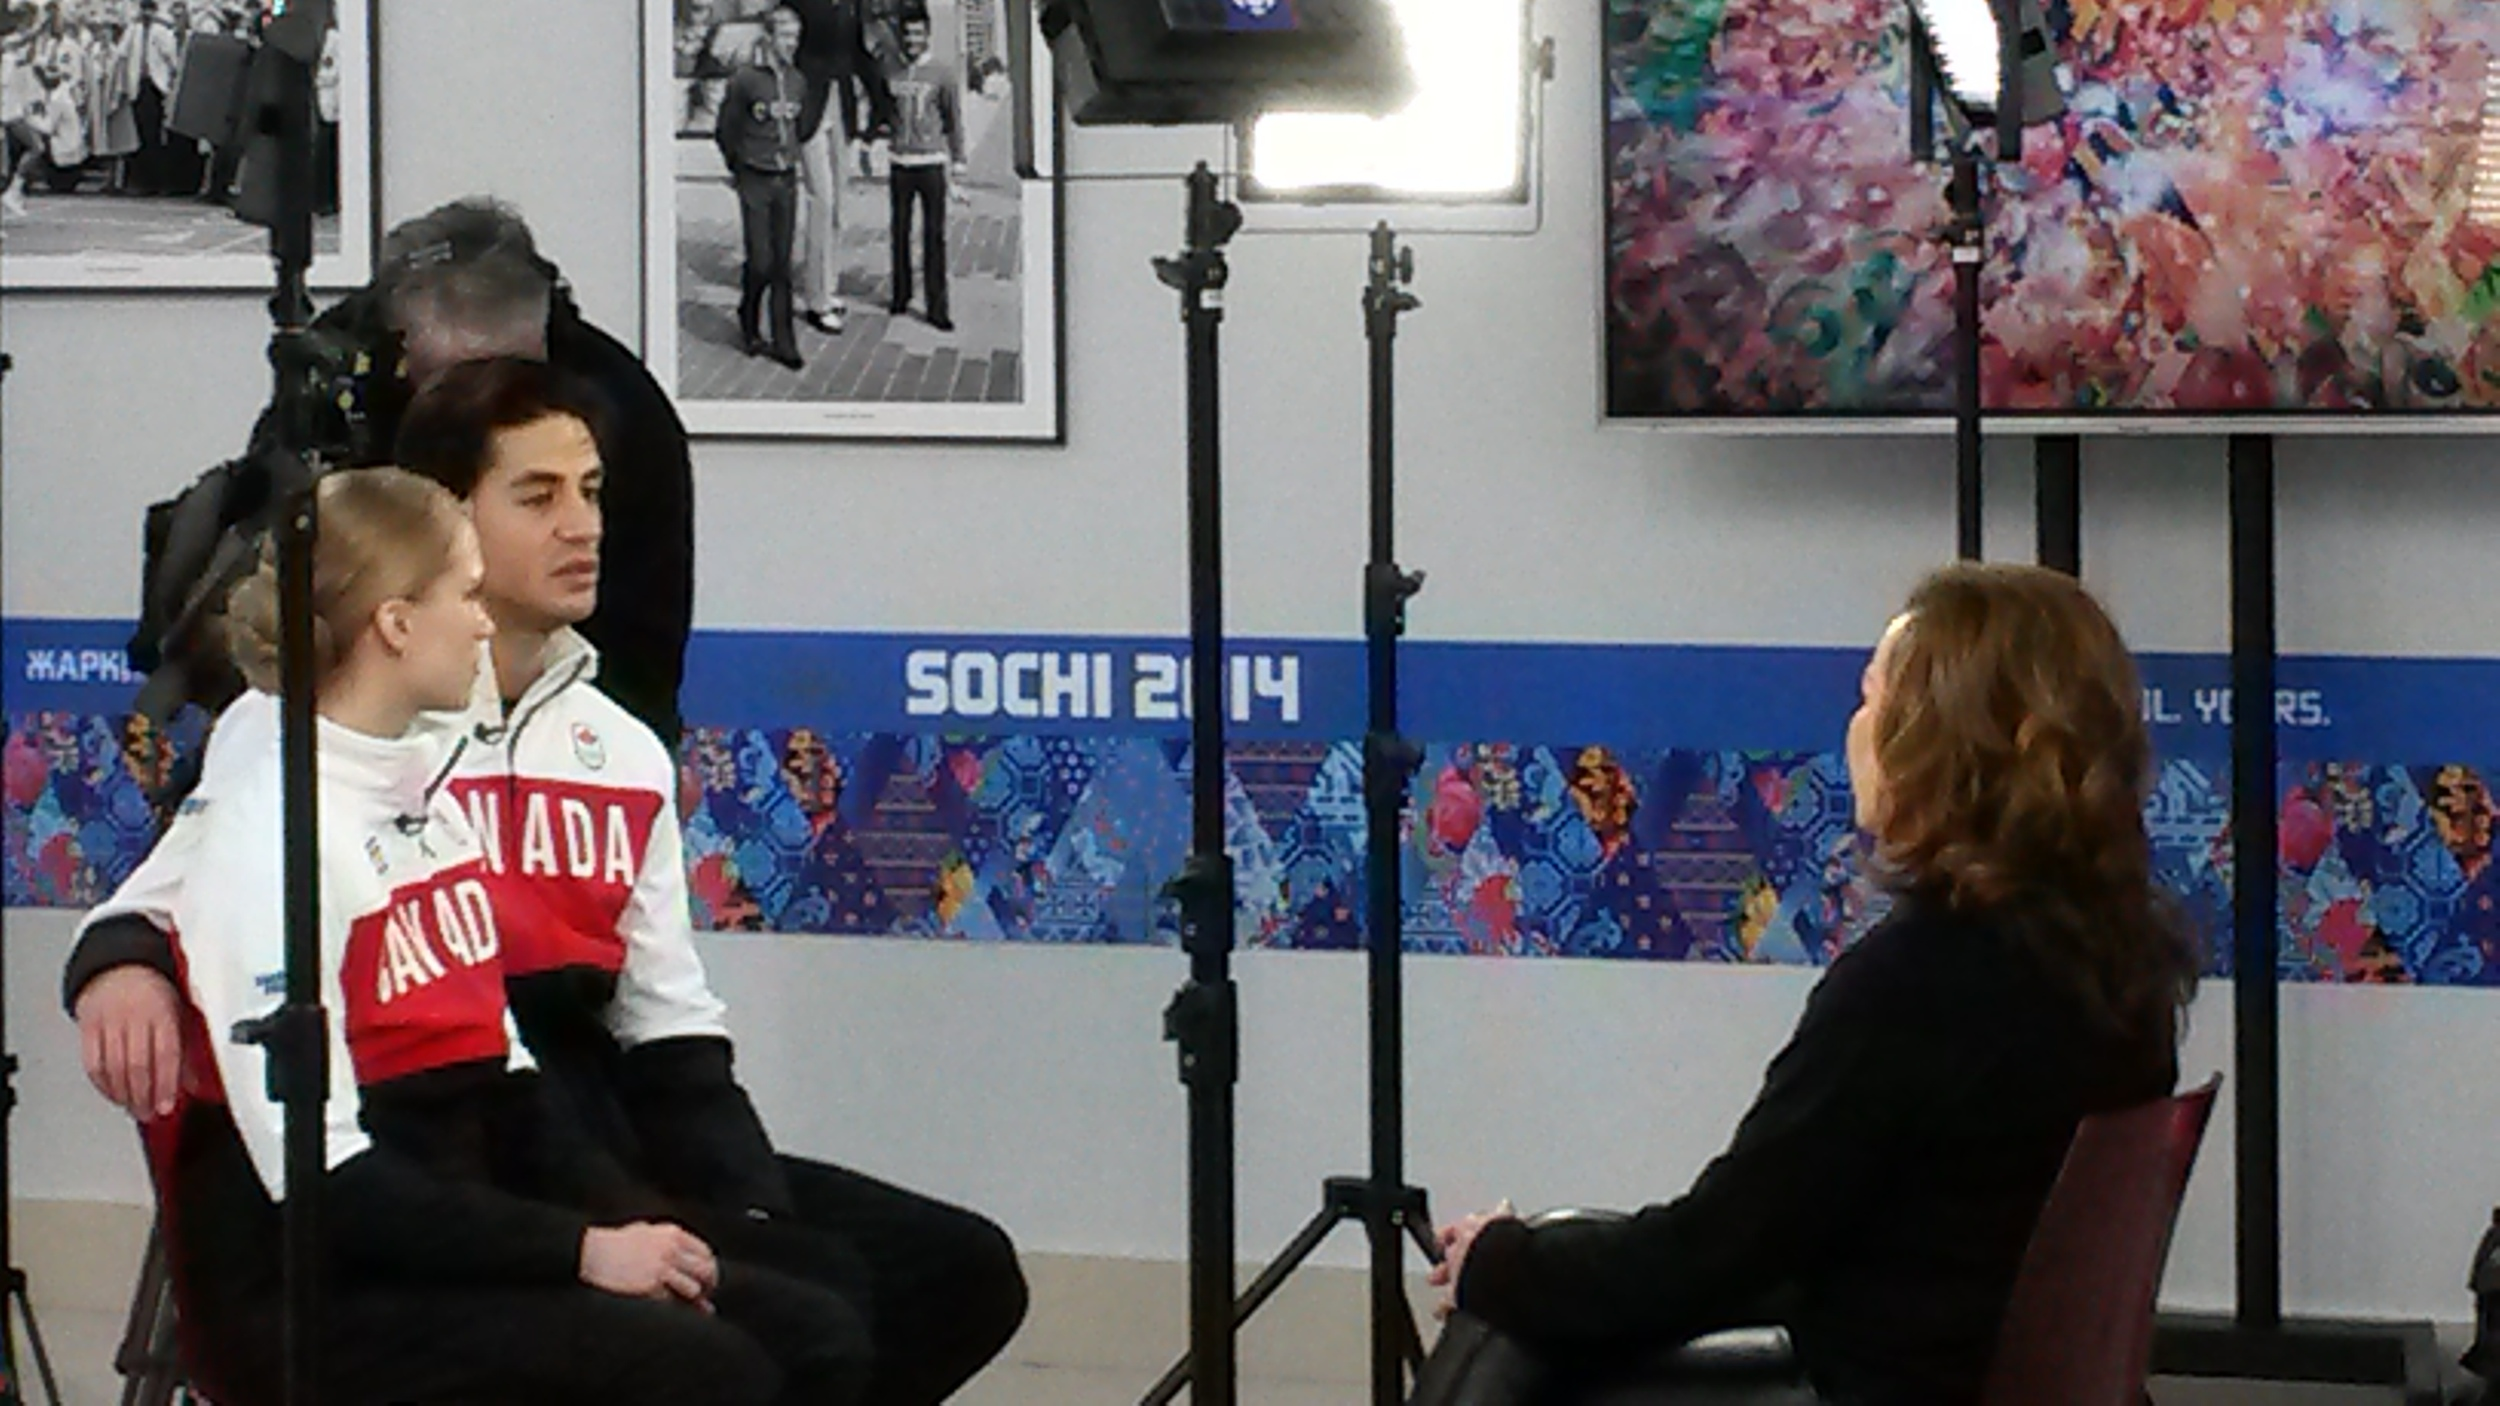 As you walk around the press center you sometimes see athletes being interviewed by TV crews. This pair is Canadian ice dancers Kaitlyn Weaver and Andrew Poje.